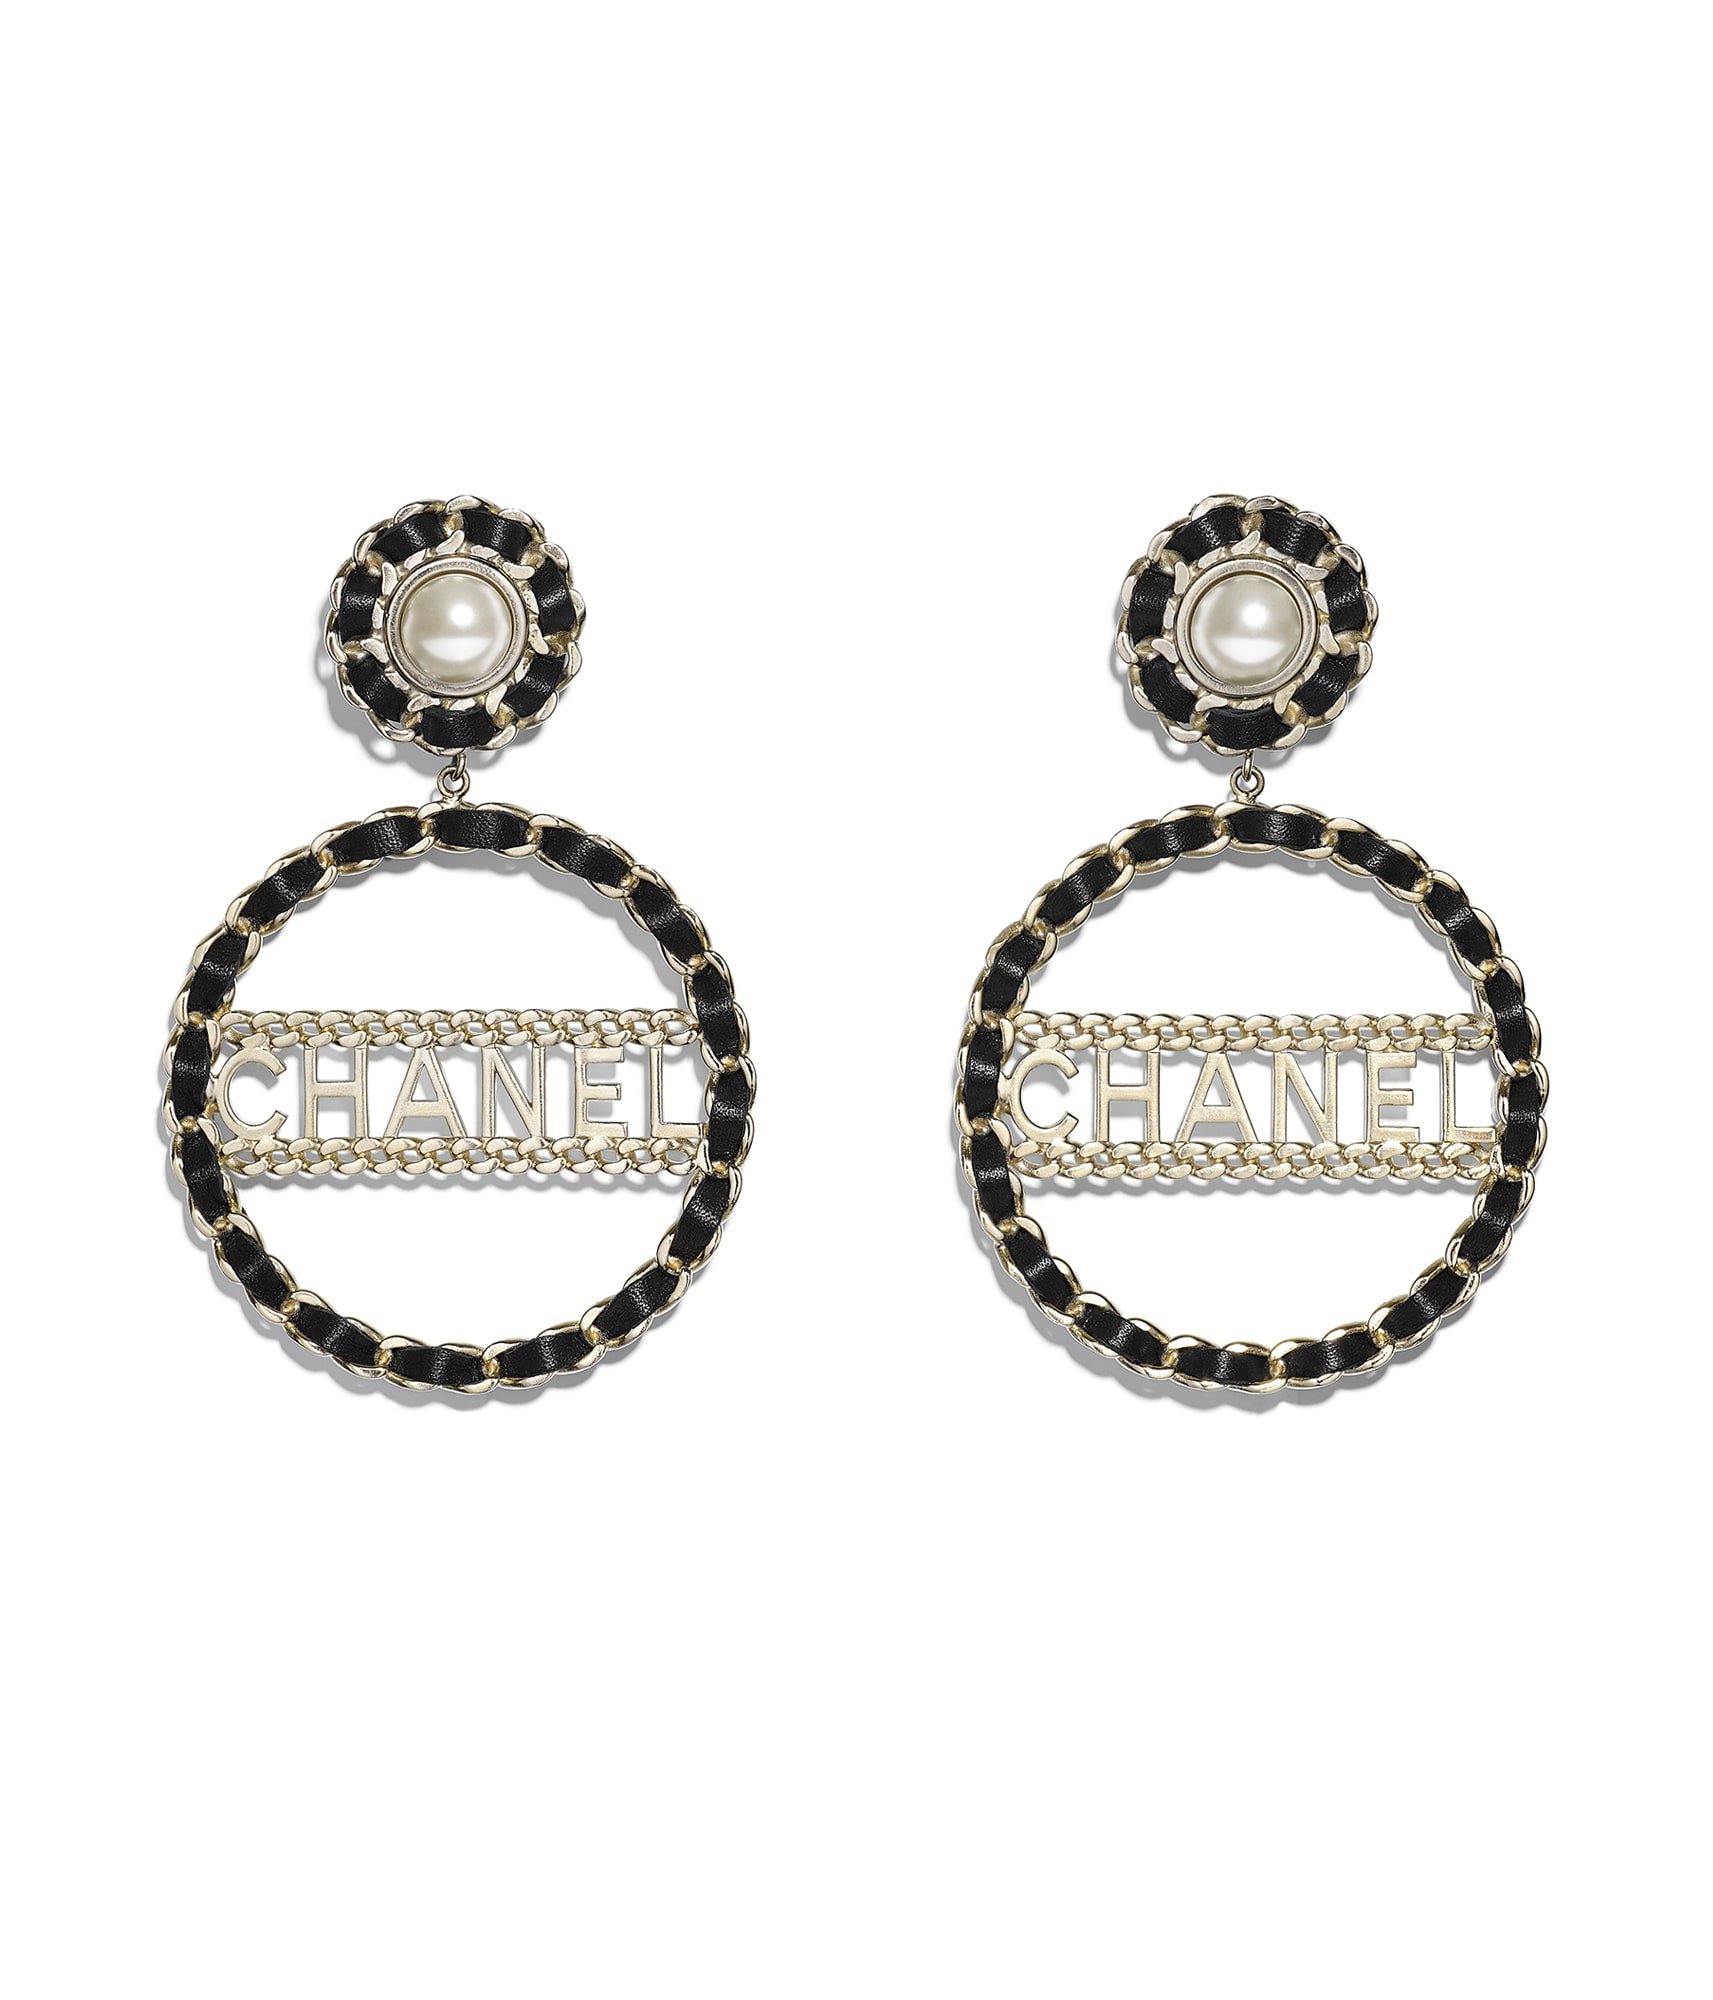 Clip-on Earrings, metal, imitation pearls & calfskin, gold, black & pearly white - CHANEL